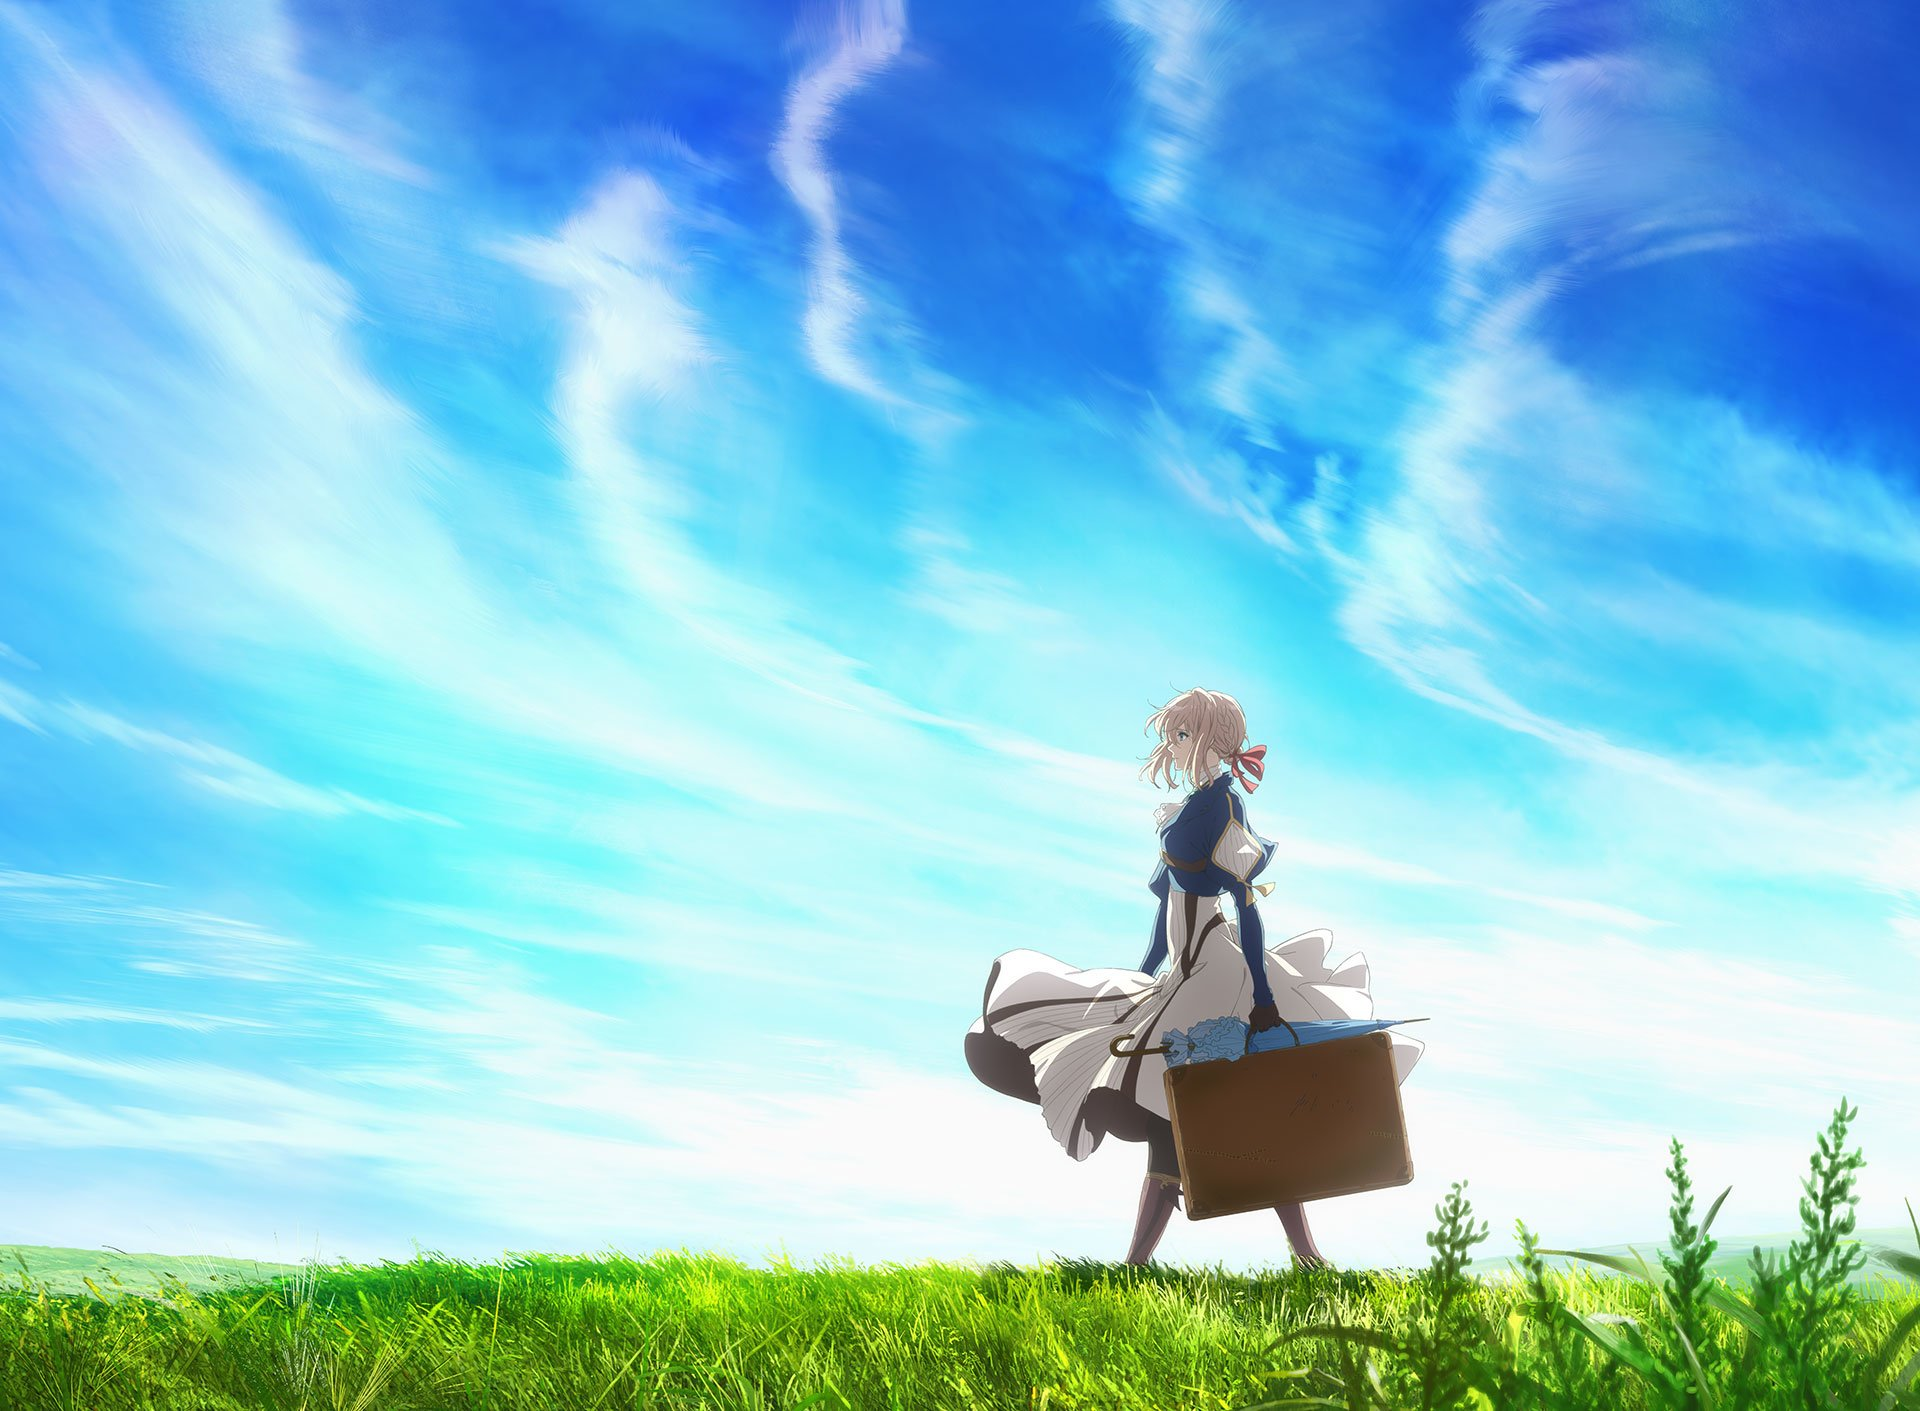 Pin by Hour Glass on Violet Evergarden Violet evergarden